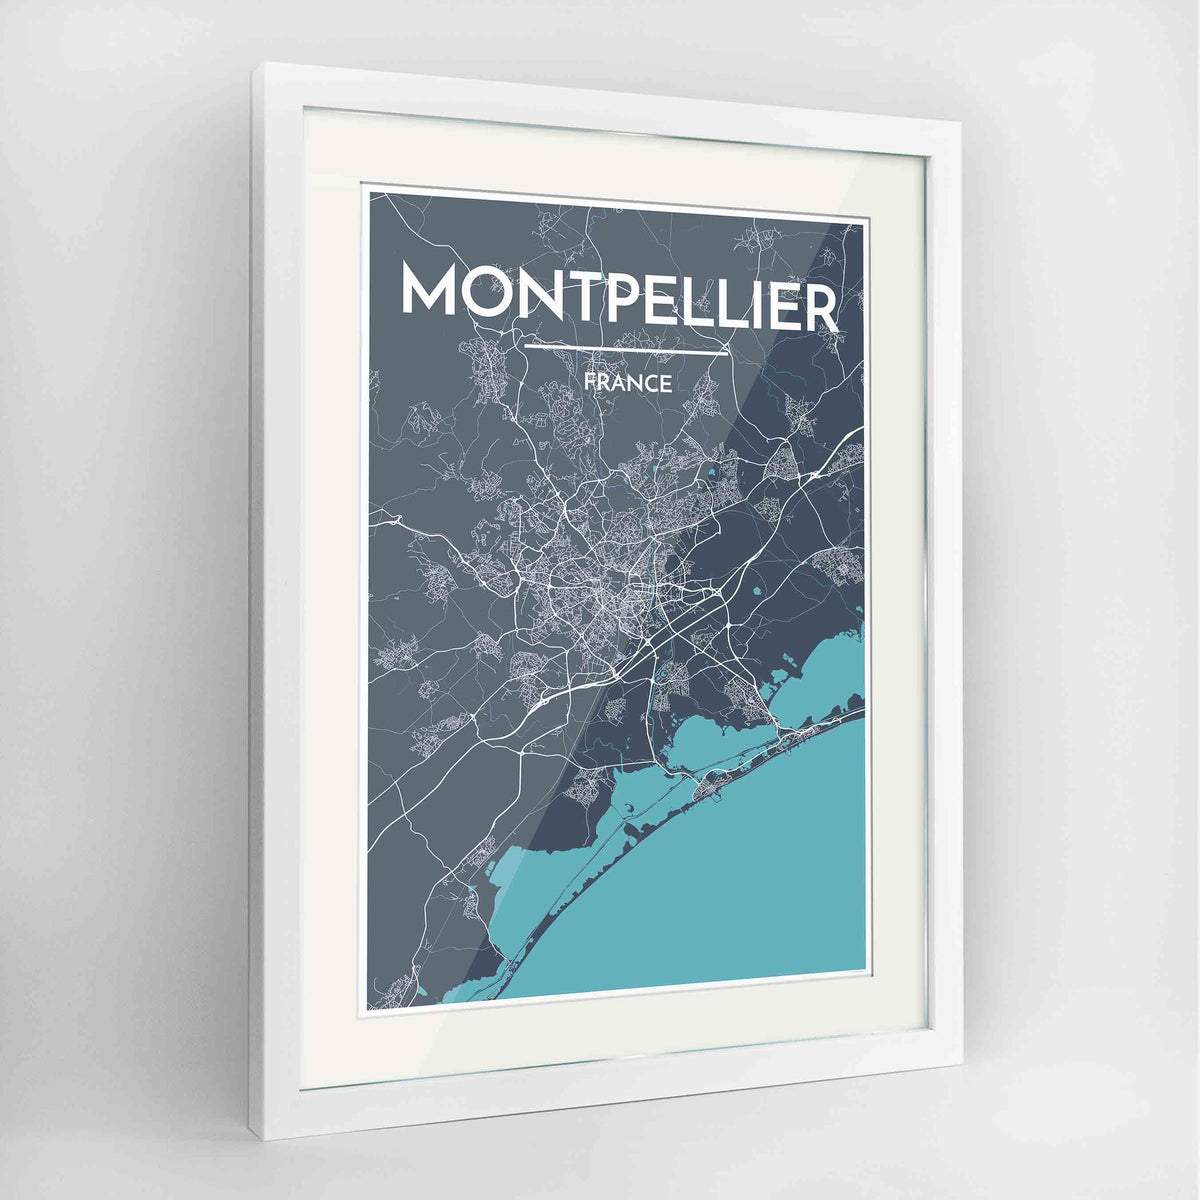 "Framed Montpellier Map Art Print 24x36"" Contemporary White frame Point Two Design Group"